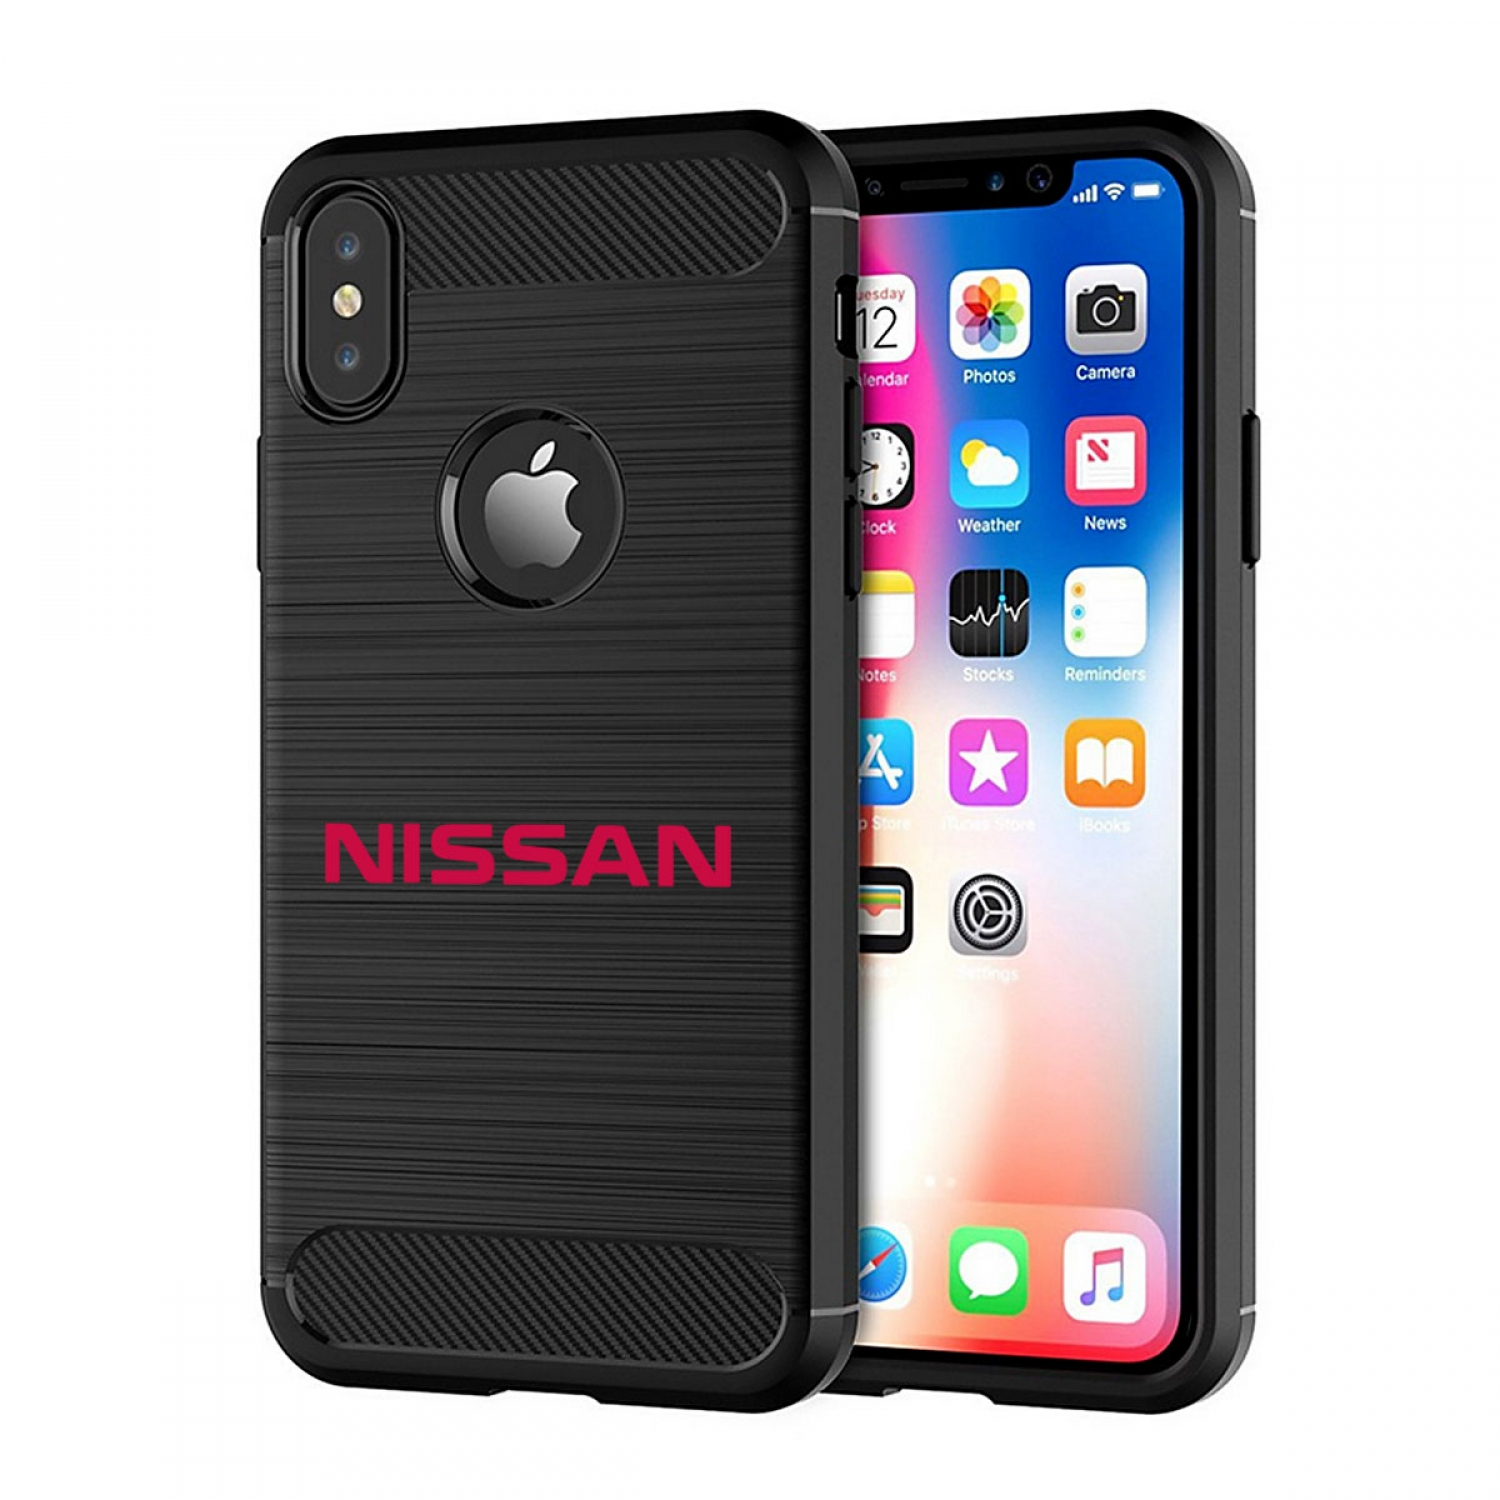 Nissan in Red iPhone X TPU Shockproof Black Carbon Fiber Textures Stripes Cell Phone Case